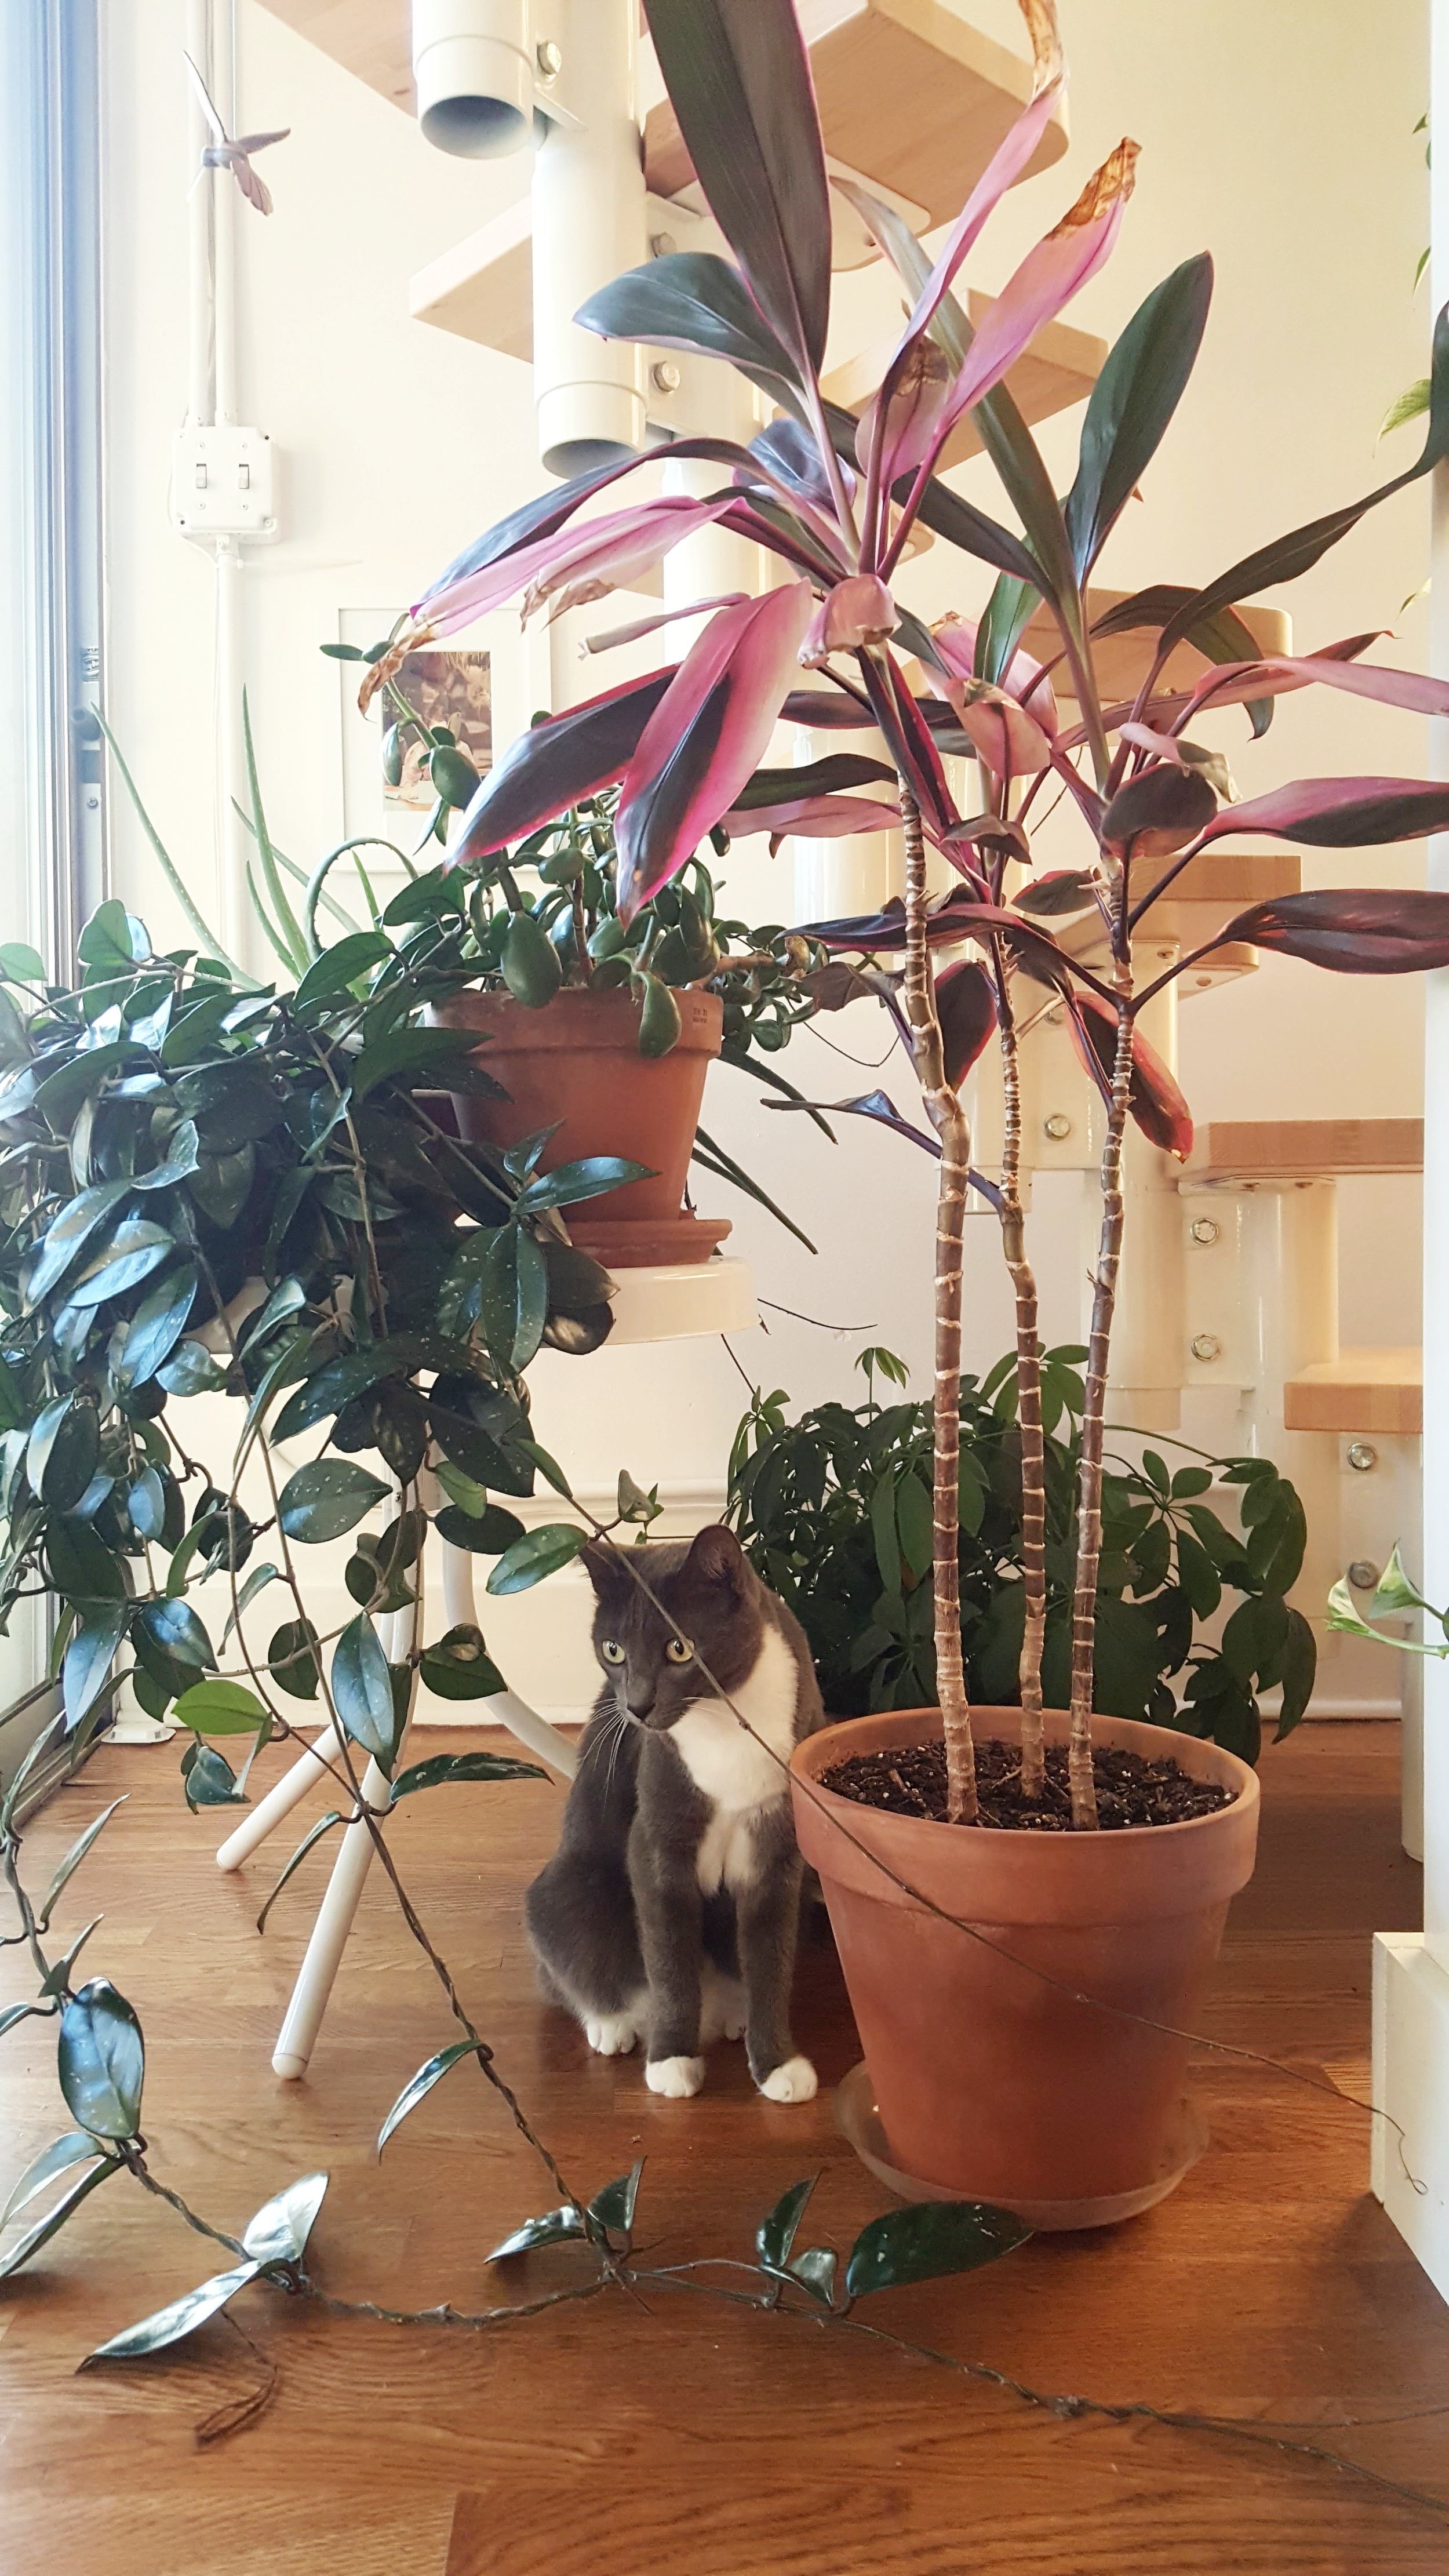 Nadine observes from the under-the-stairs jungle.